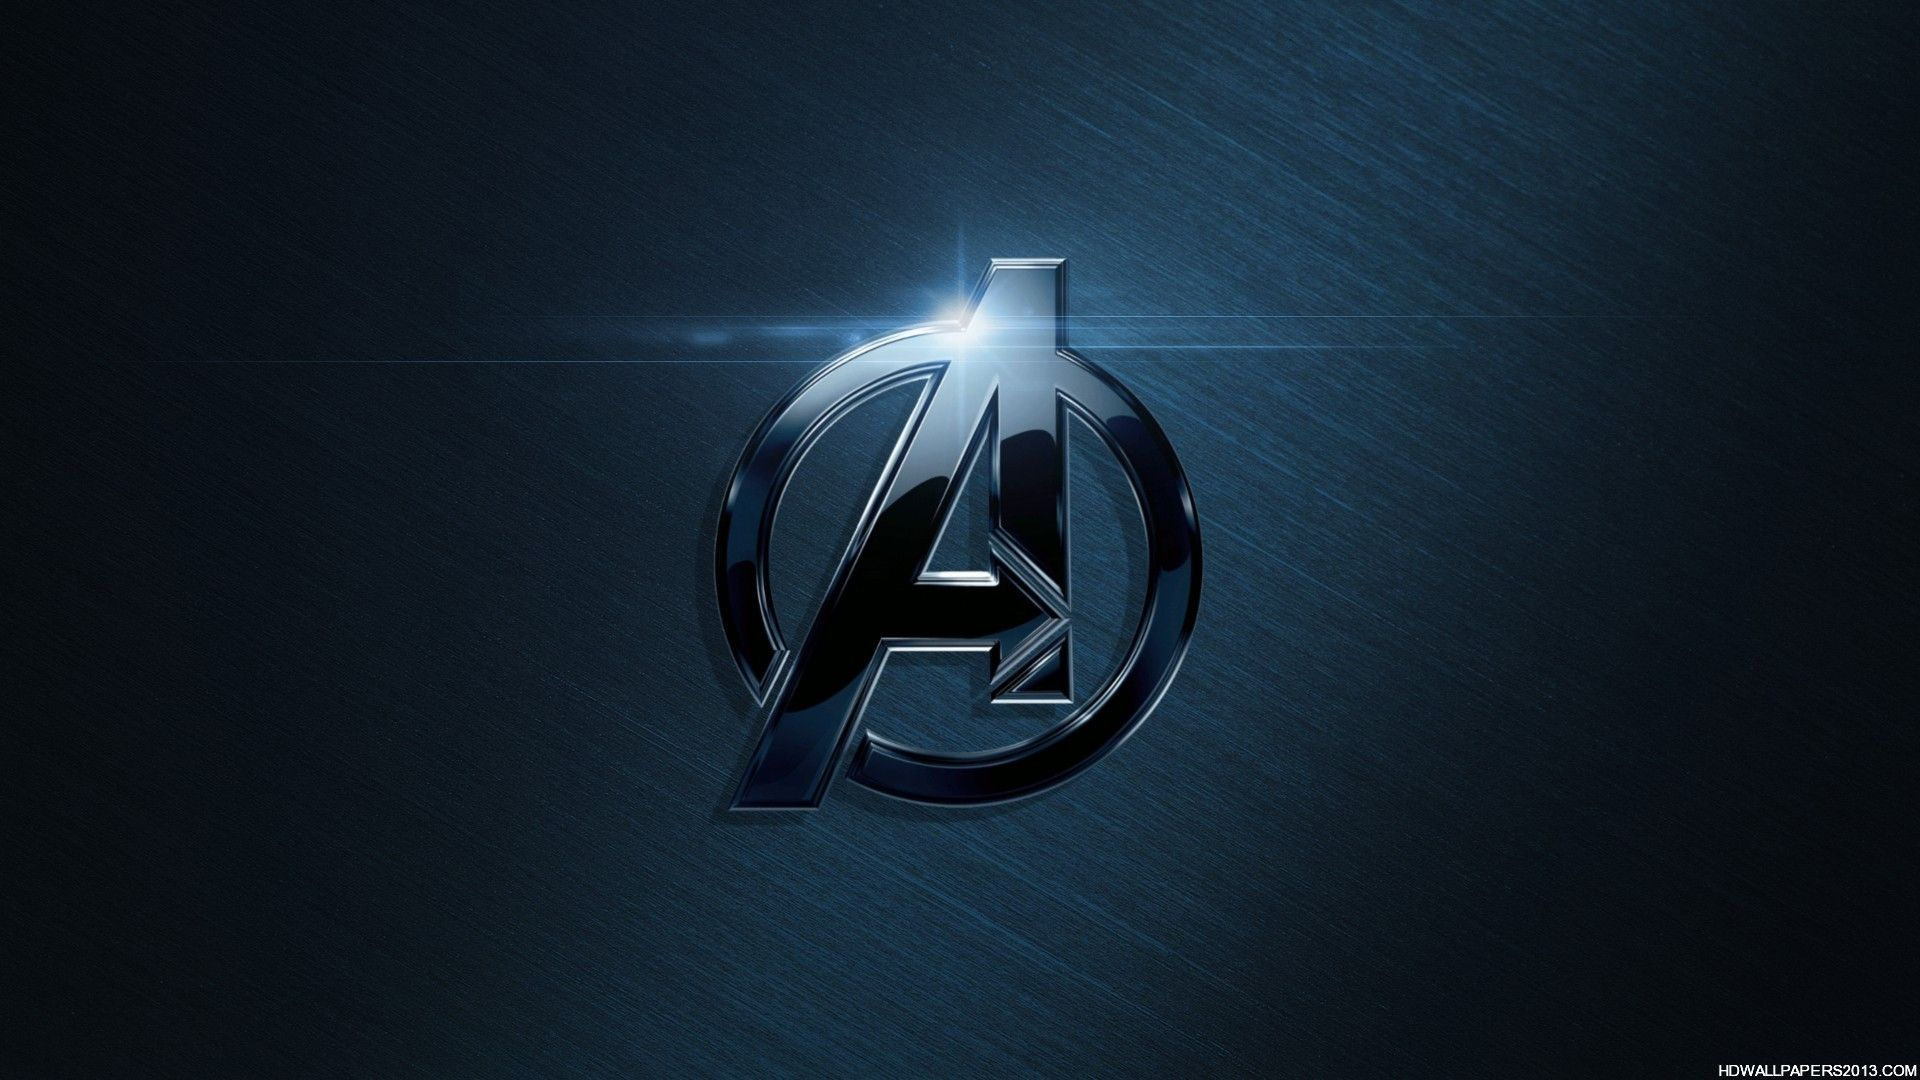 If Money Power And Technology Wasnt An Issue What Avenger From The Movie Would You Be Description Playbuzz